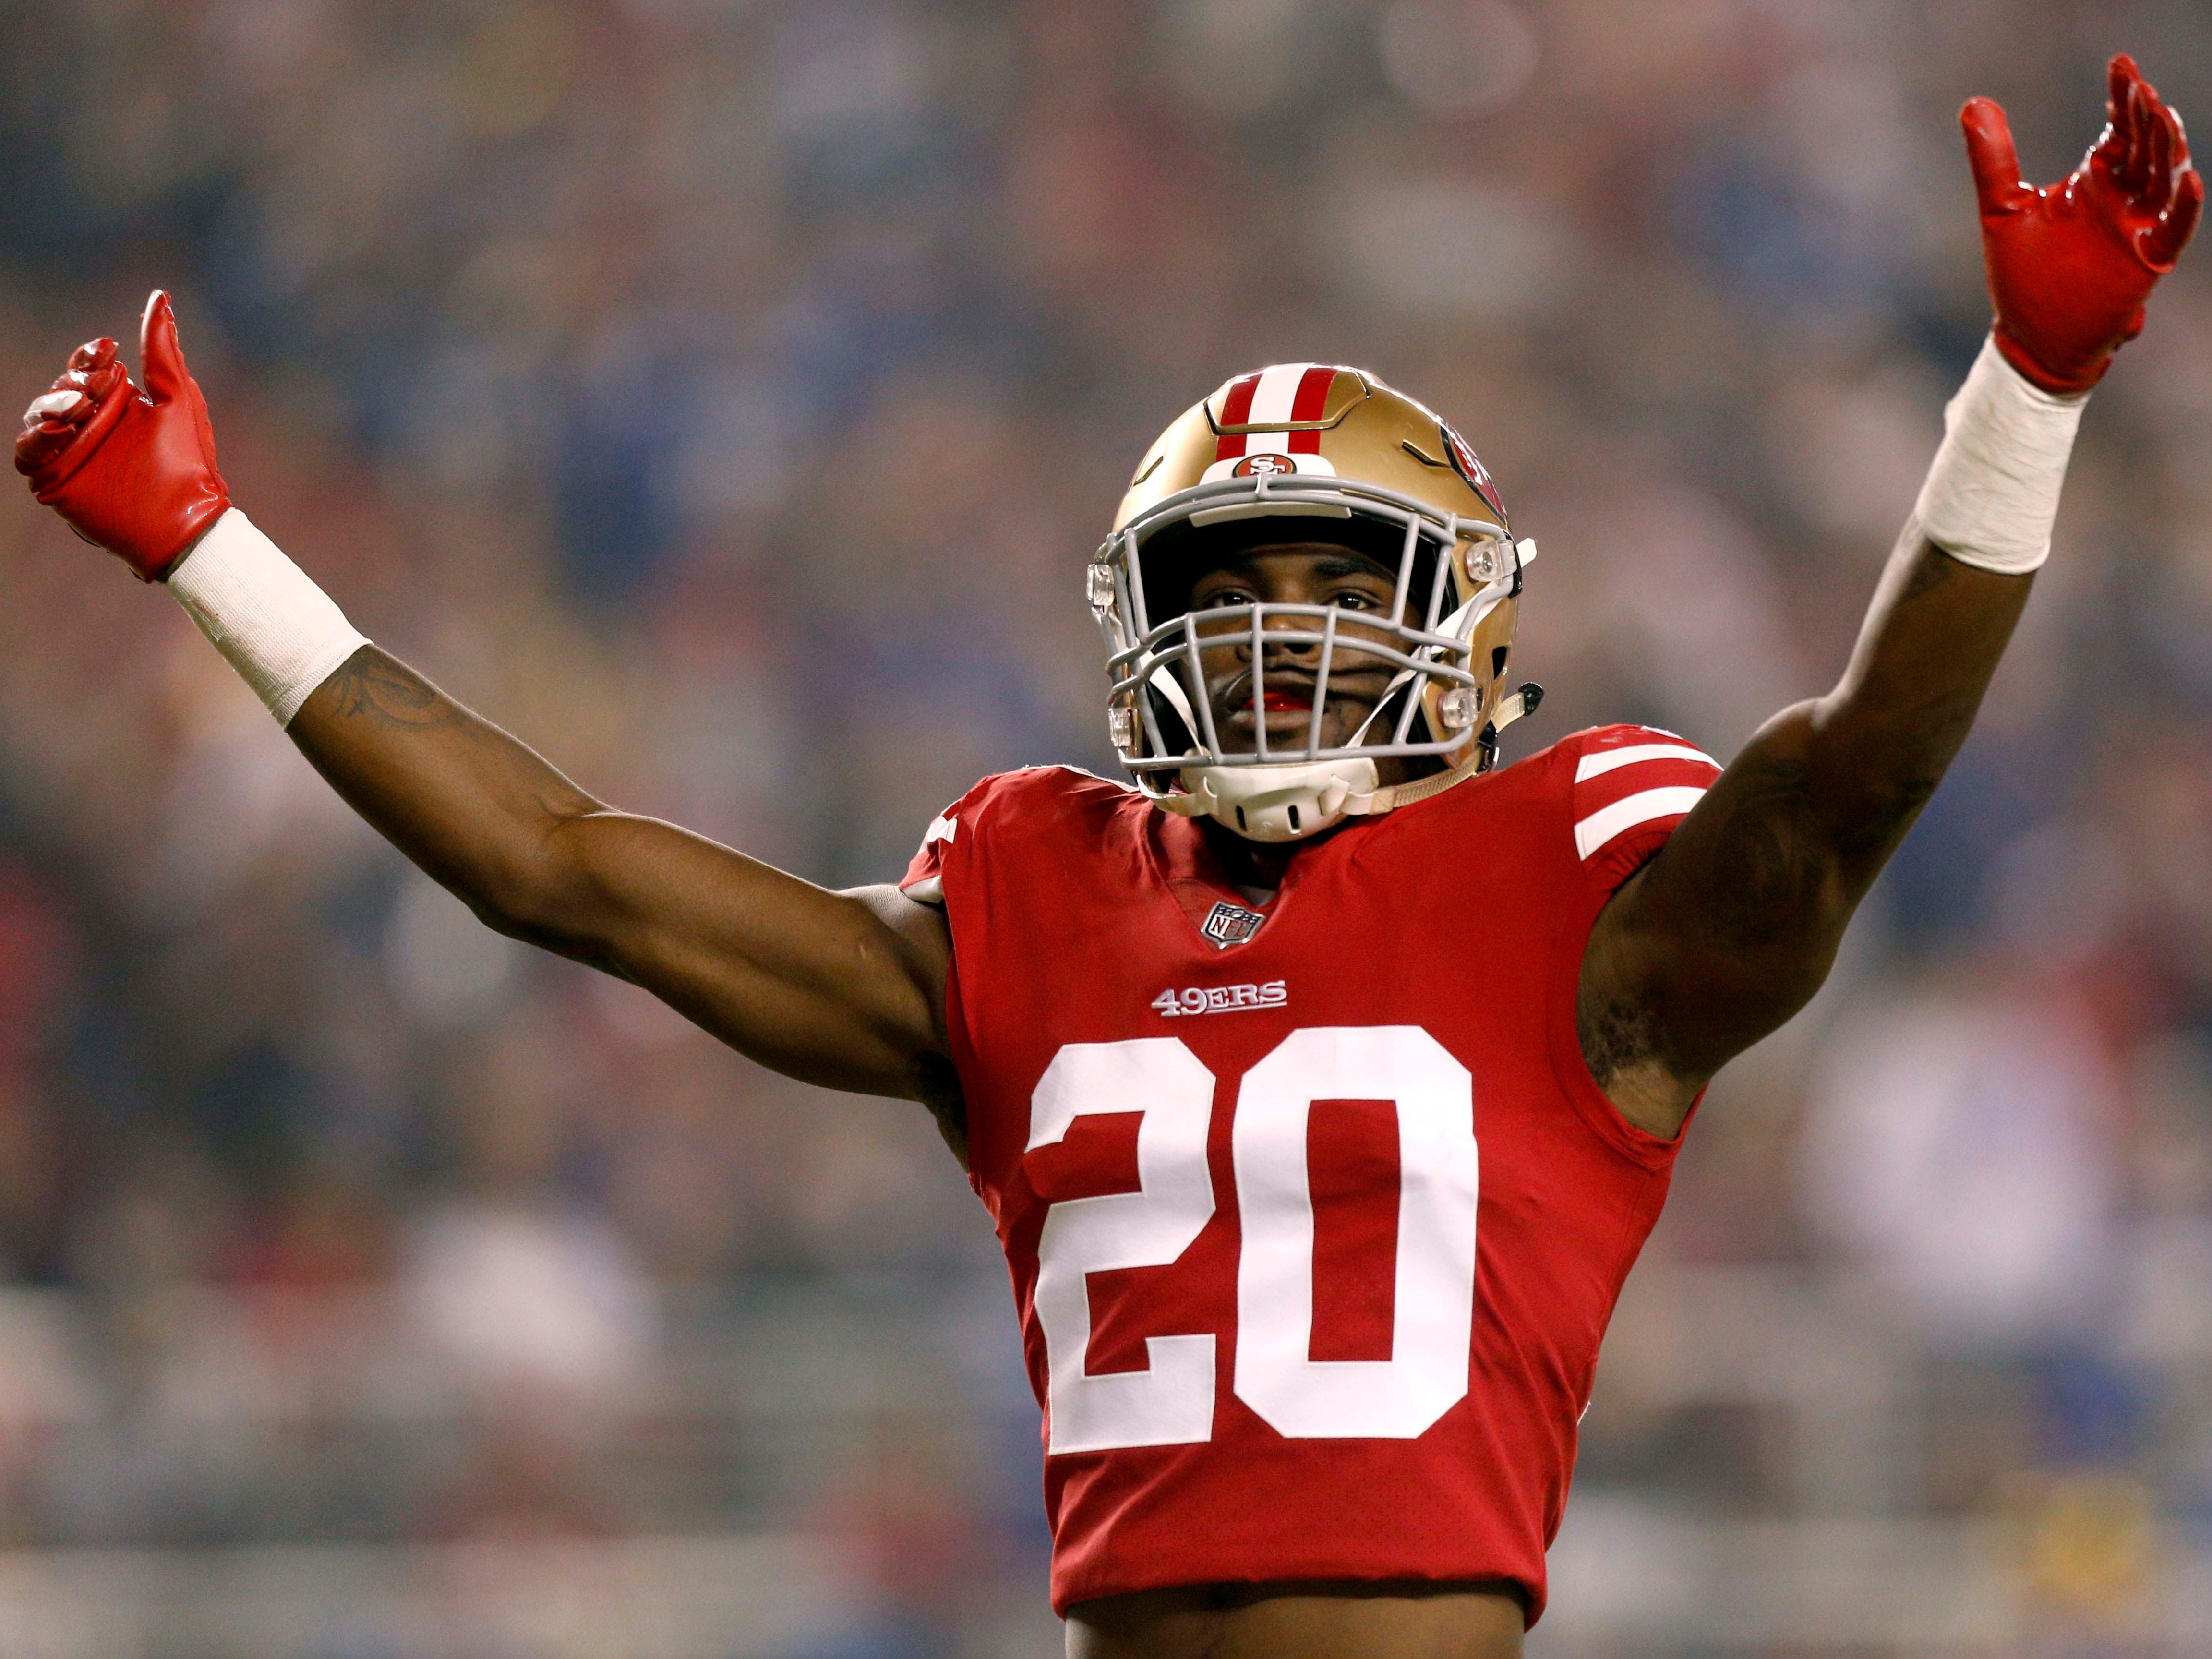 30. 49ers (31): They've technically got a top-10 defense. Doesn't feel that way given league-low five takeaways or 27 points they allow on weekly basis.